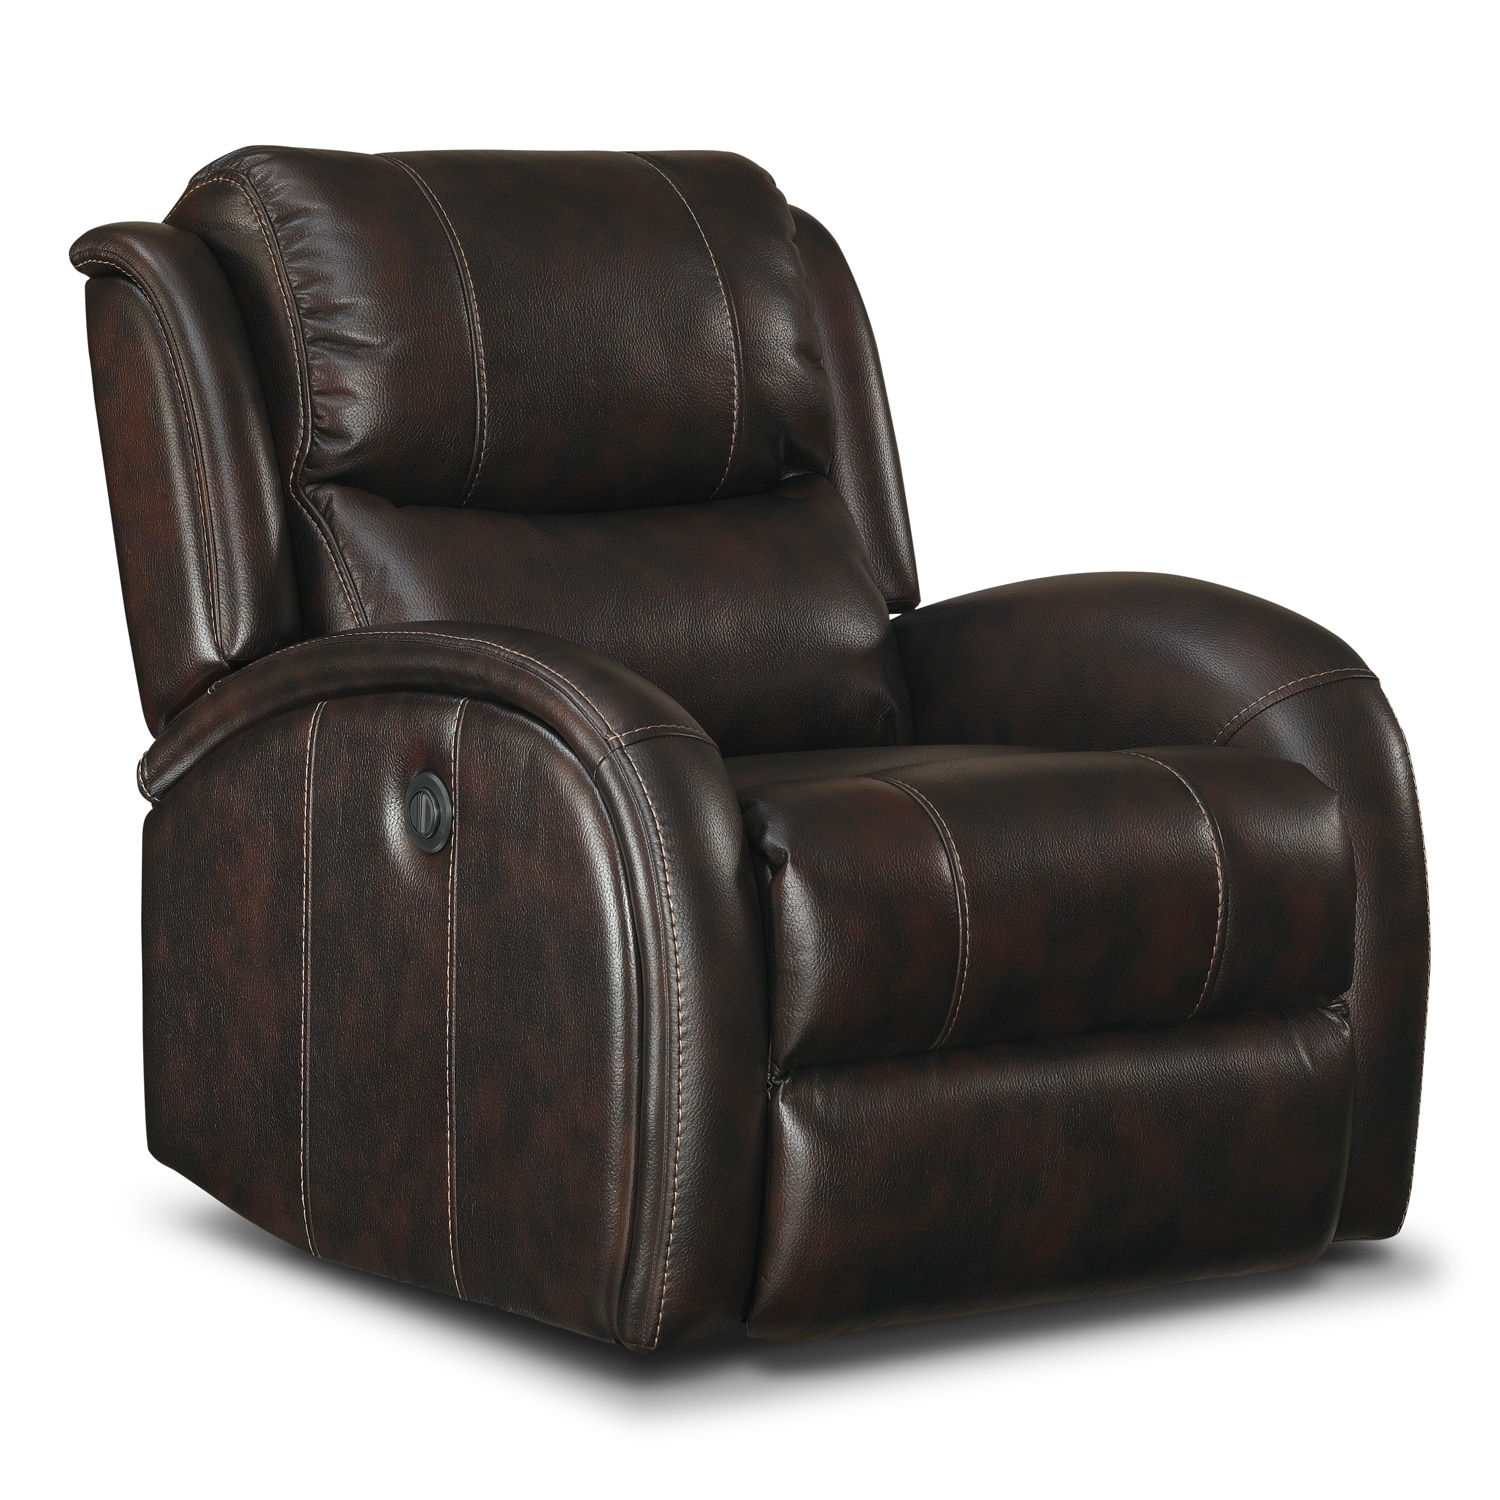 Recliners & Rockers | Value City Furniture | Value City Furniture With Denali Light Grey 6 Piece Reclining Sectionals With 2 Power Headrests (Image 22 of 25)